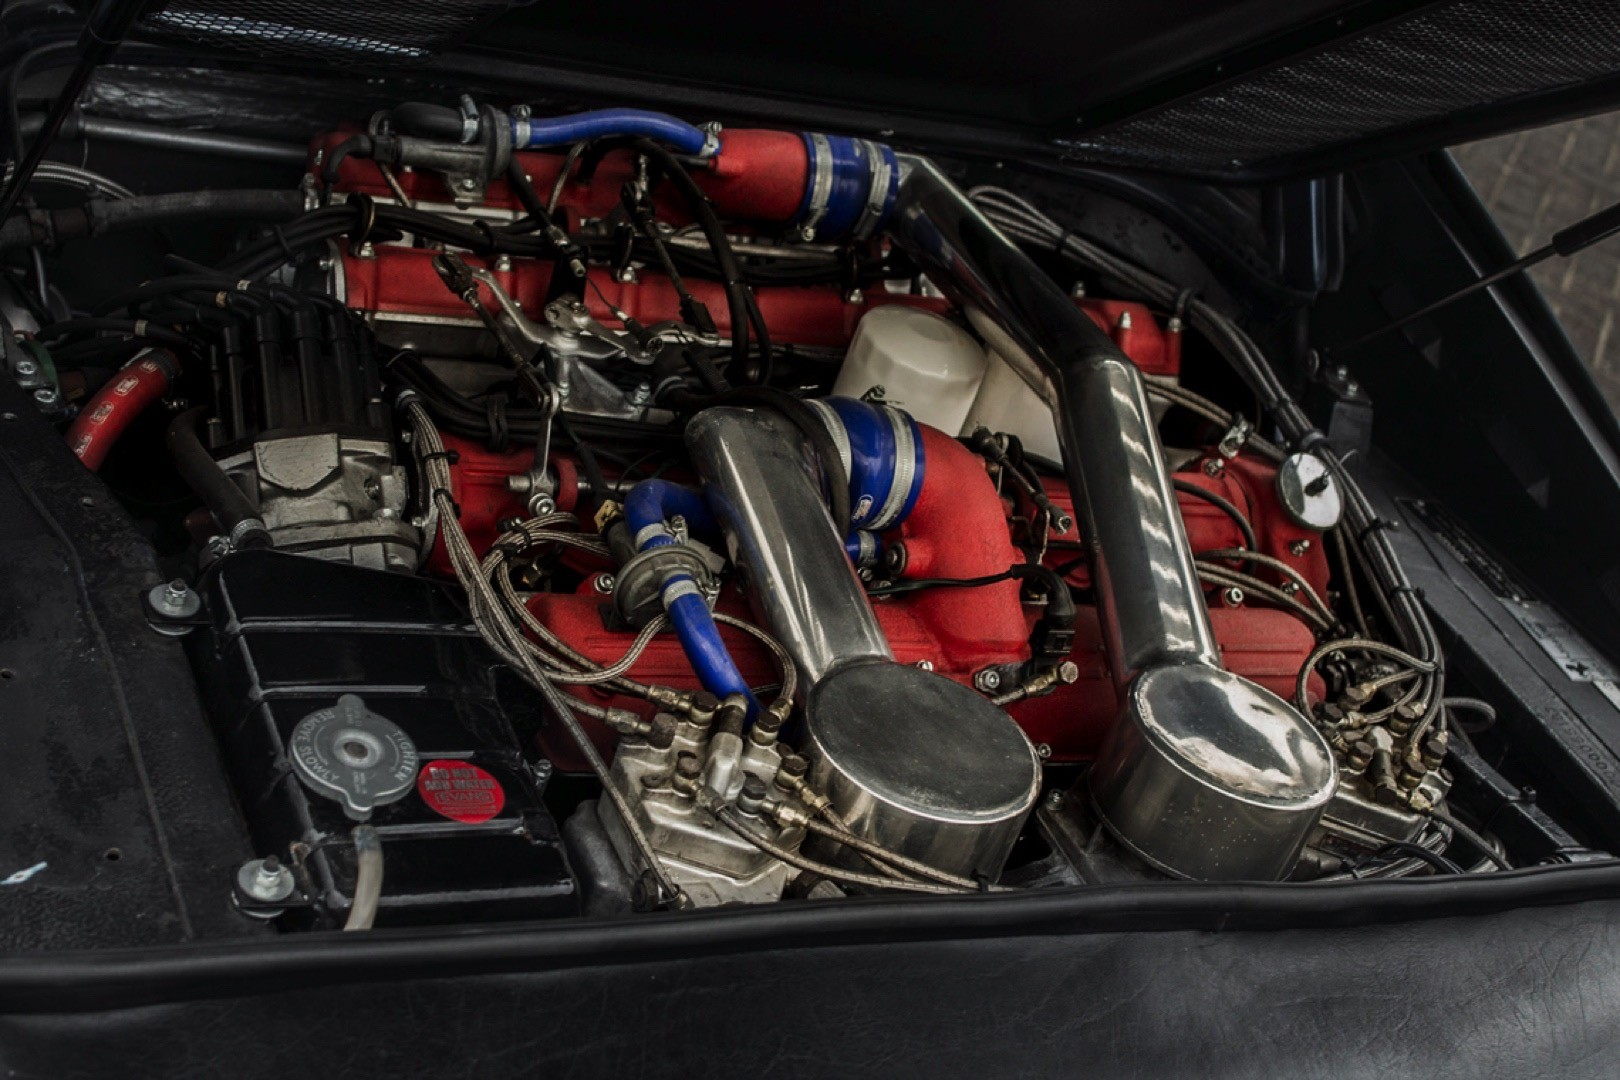 v12-engined-ferrari-308-gts 2